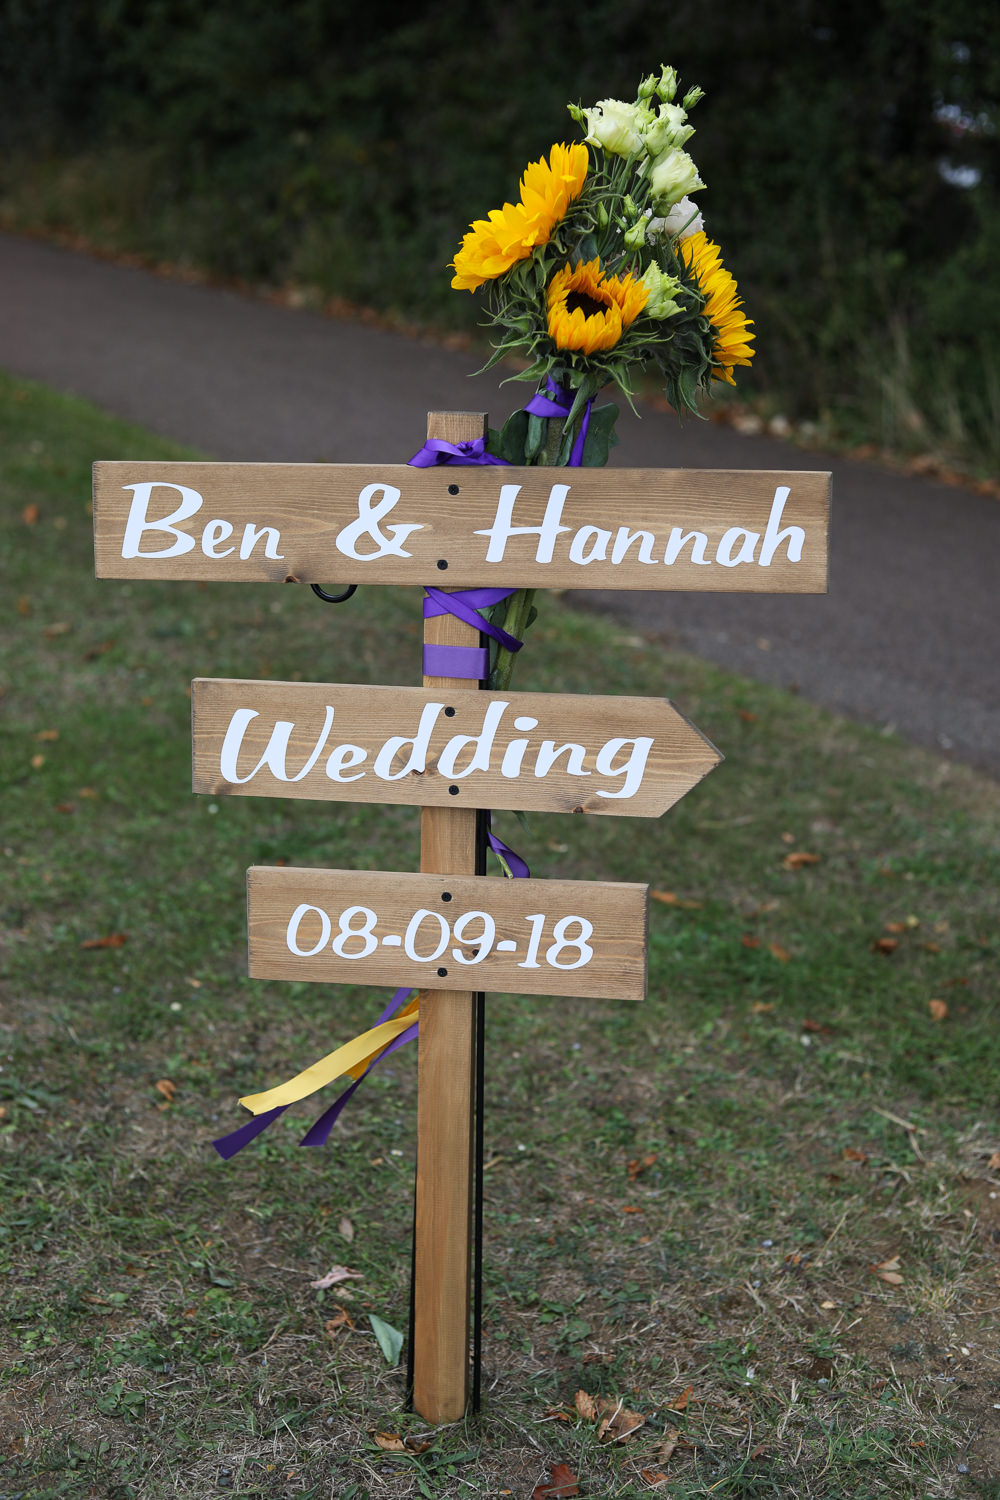 Wooden Sign Signpost Painted Directions Enchanted Garden Events Wedding Sharon Cooper Photography